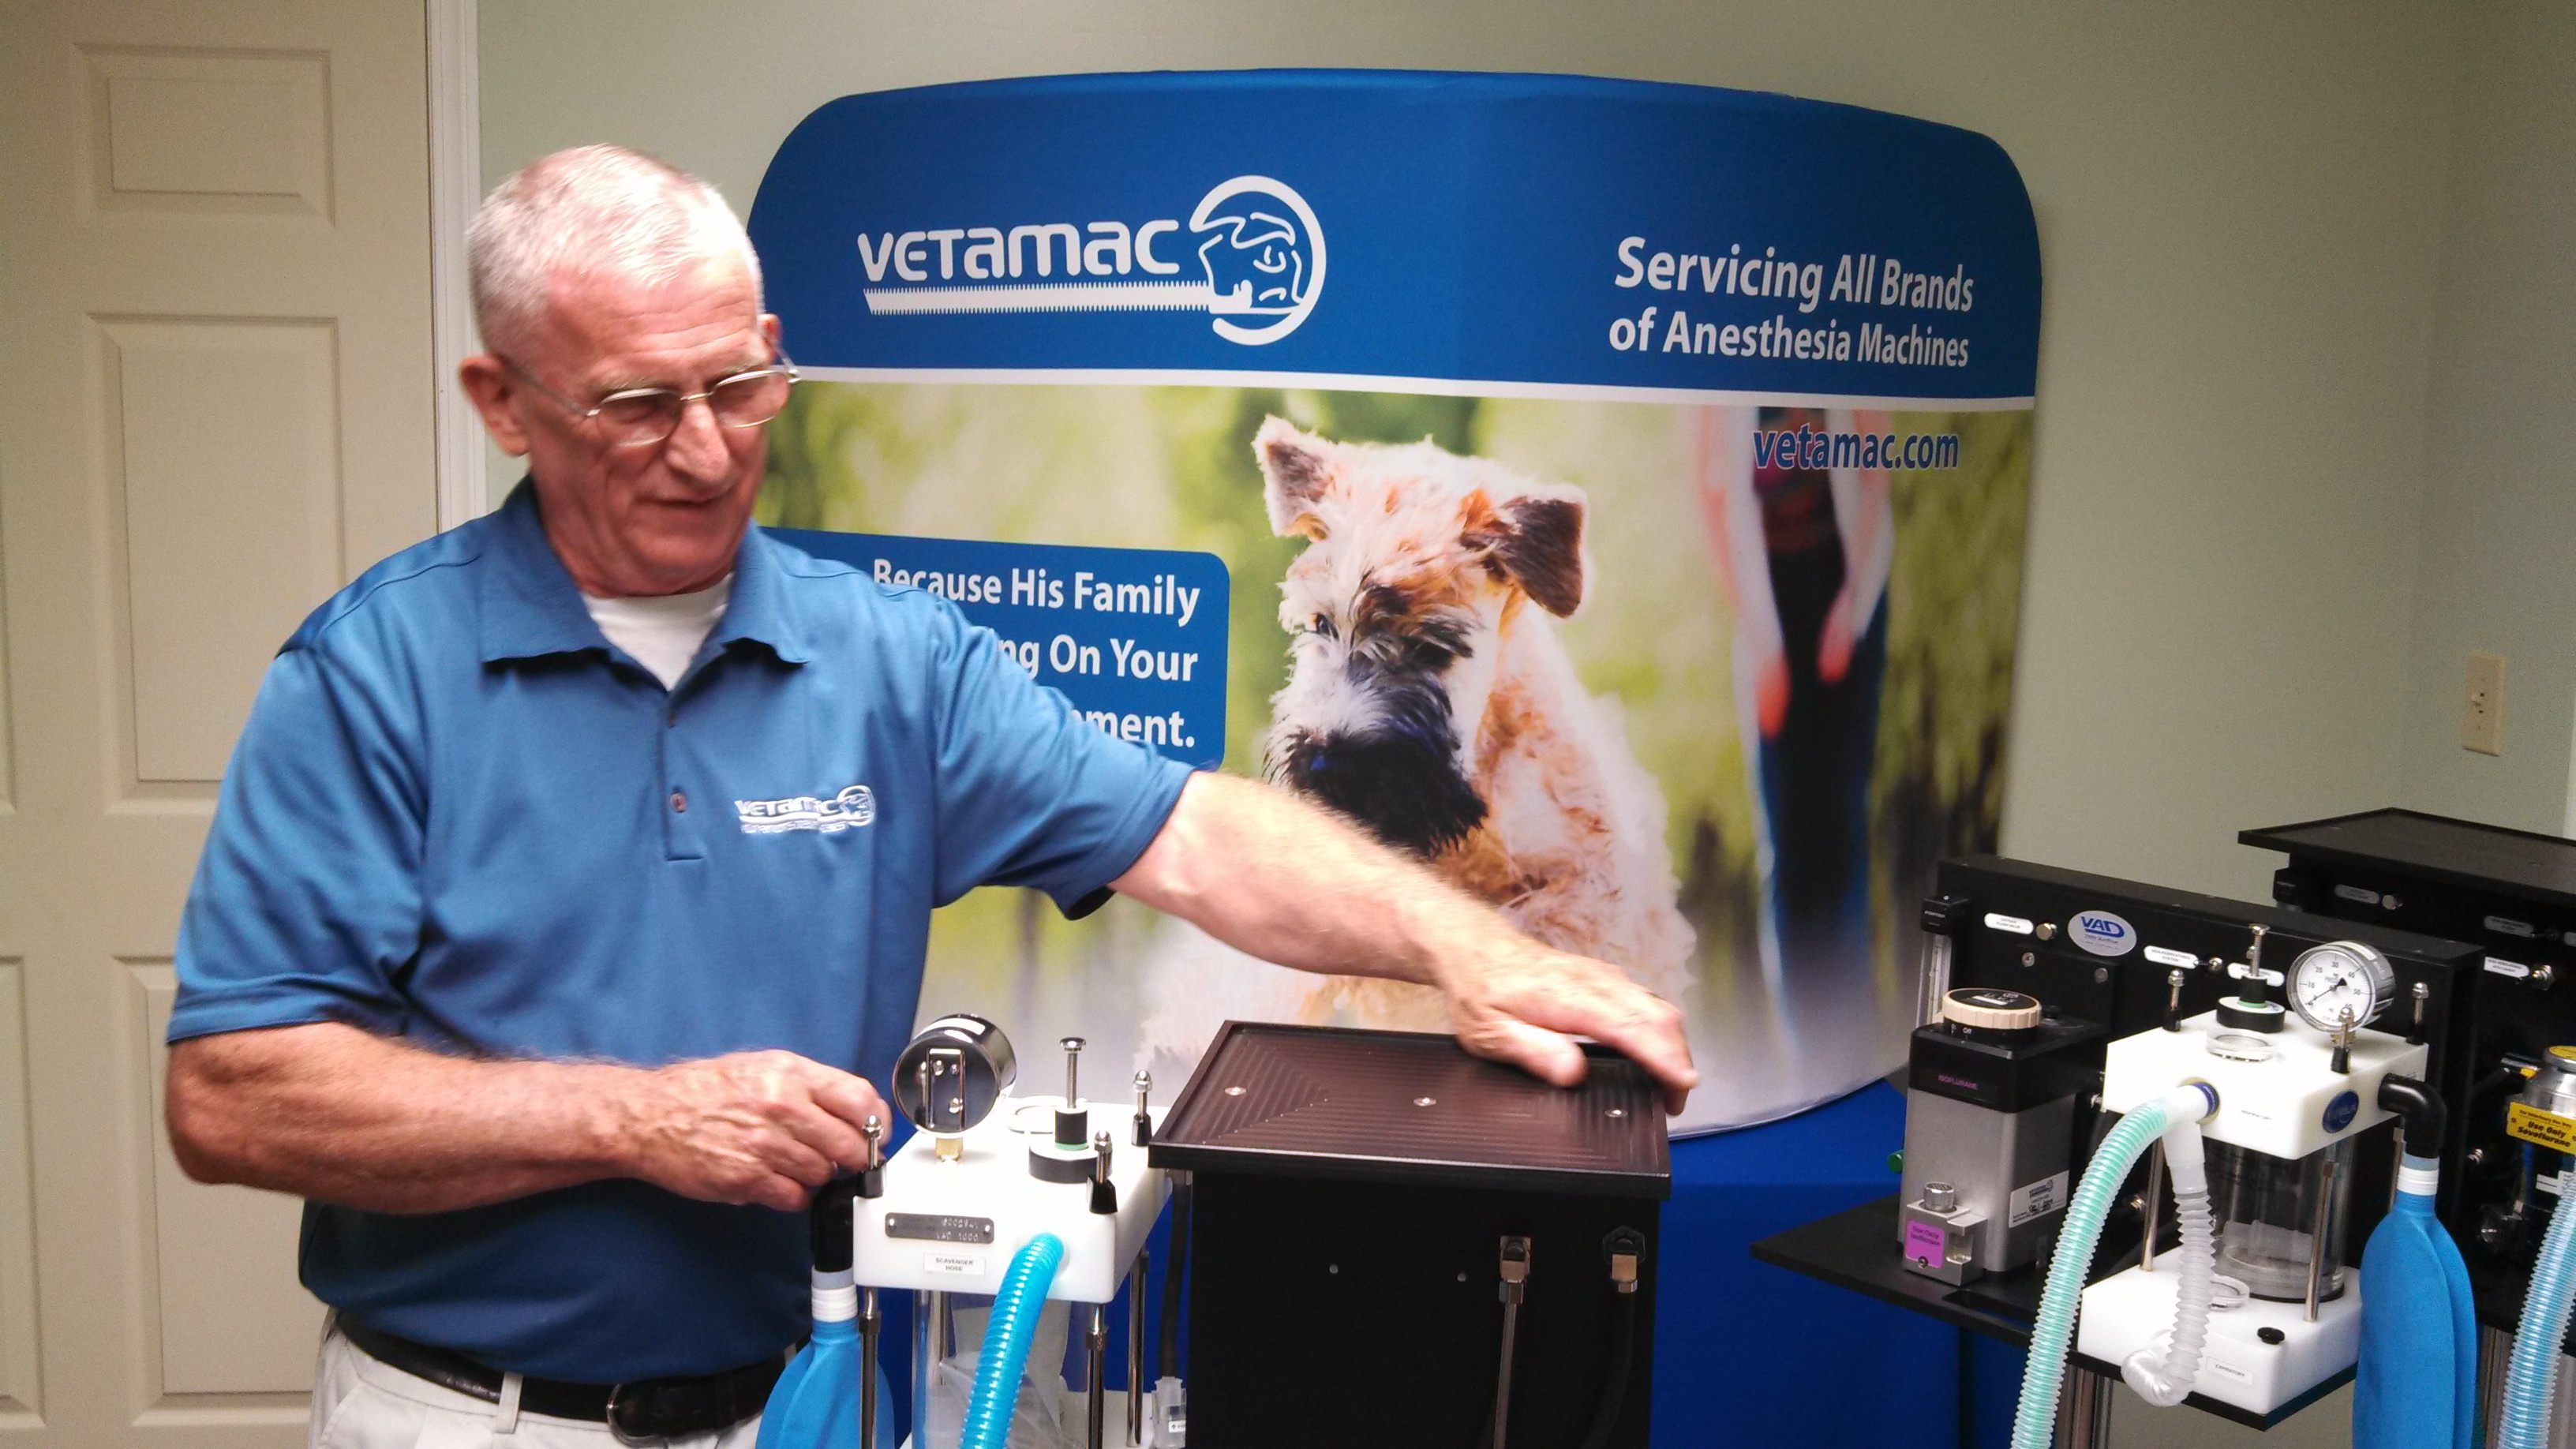 Founder, Harry Latshaw making a webinar presentation to potential veterinary anesthesia machine distributors